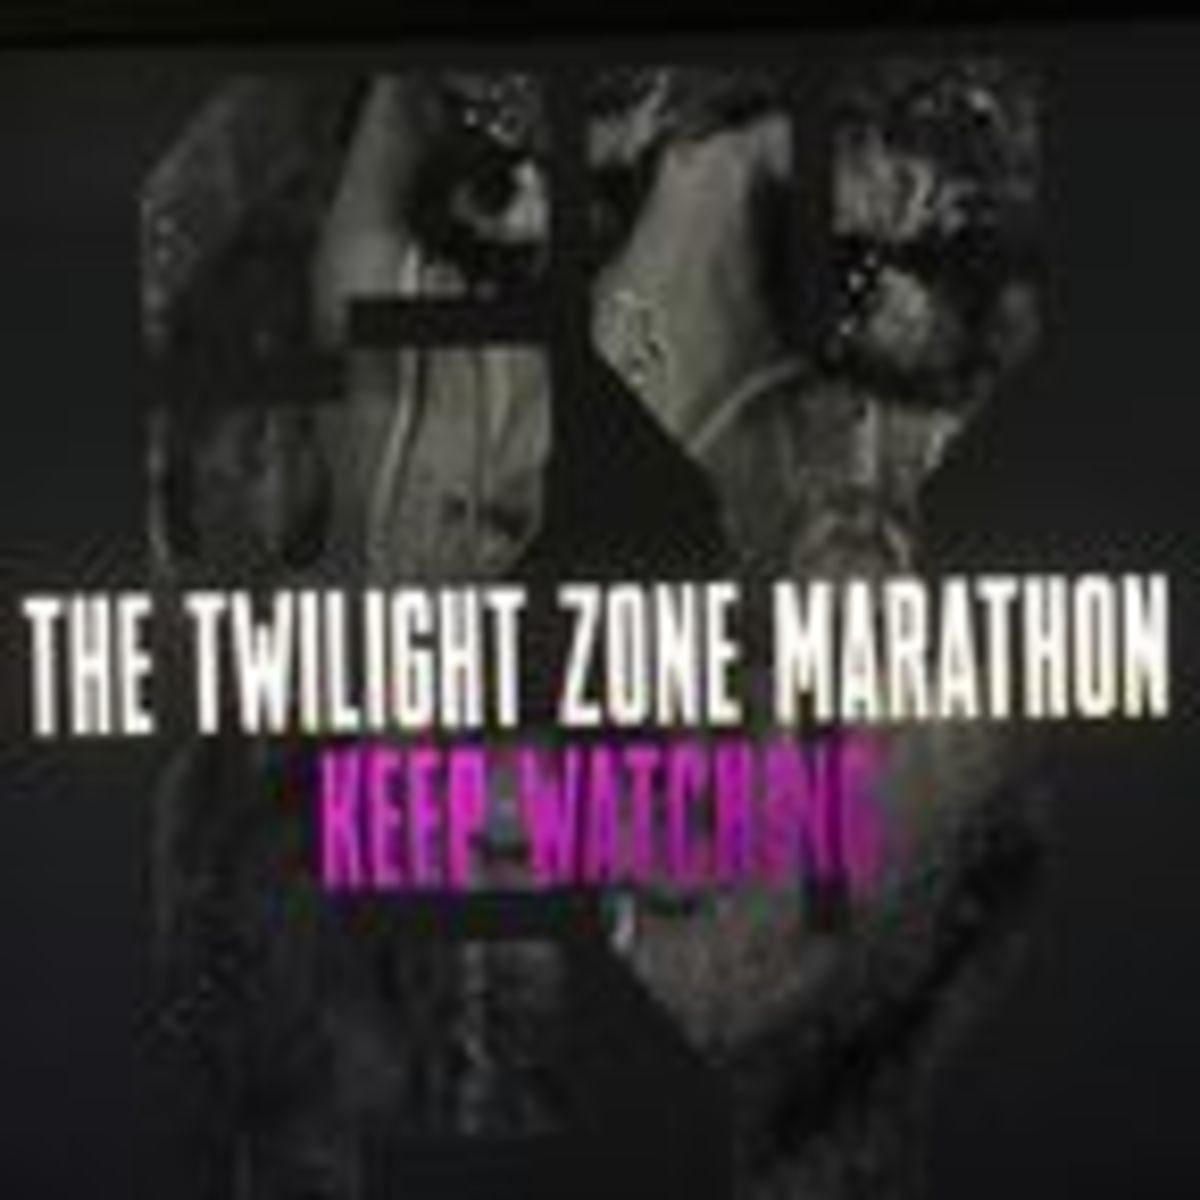 Analytic Perspectives on The Twilight Zone | Psychology Today